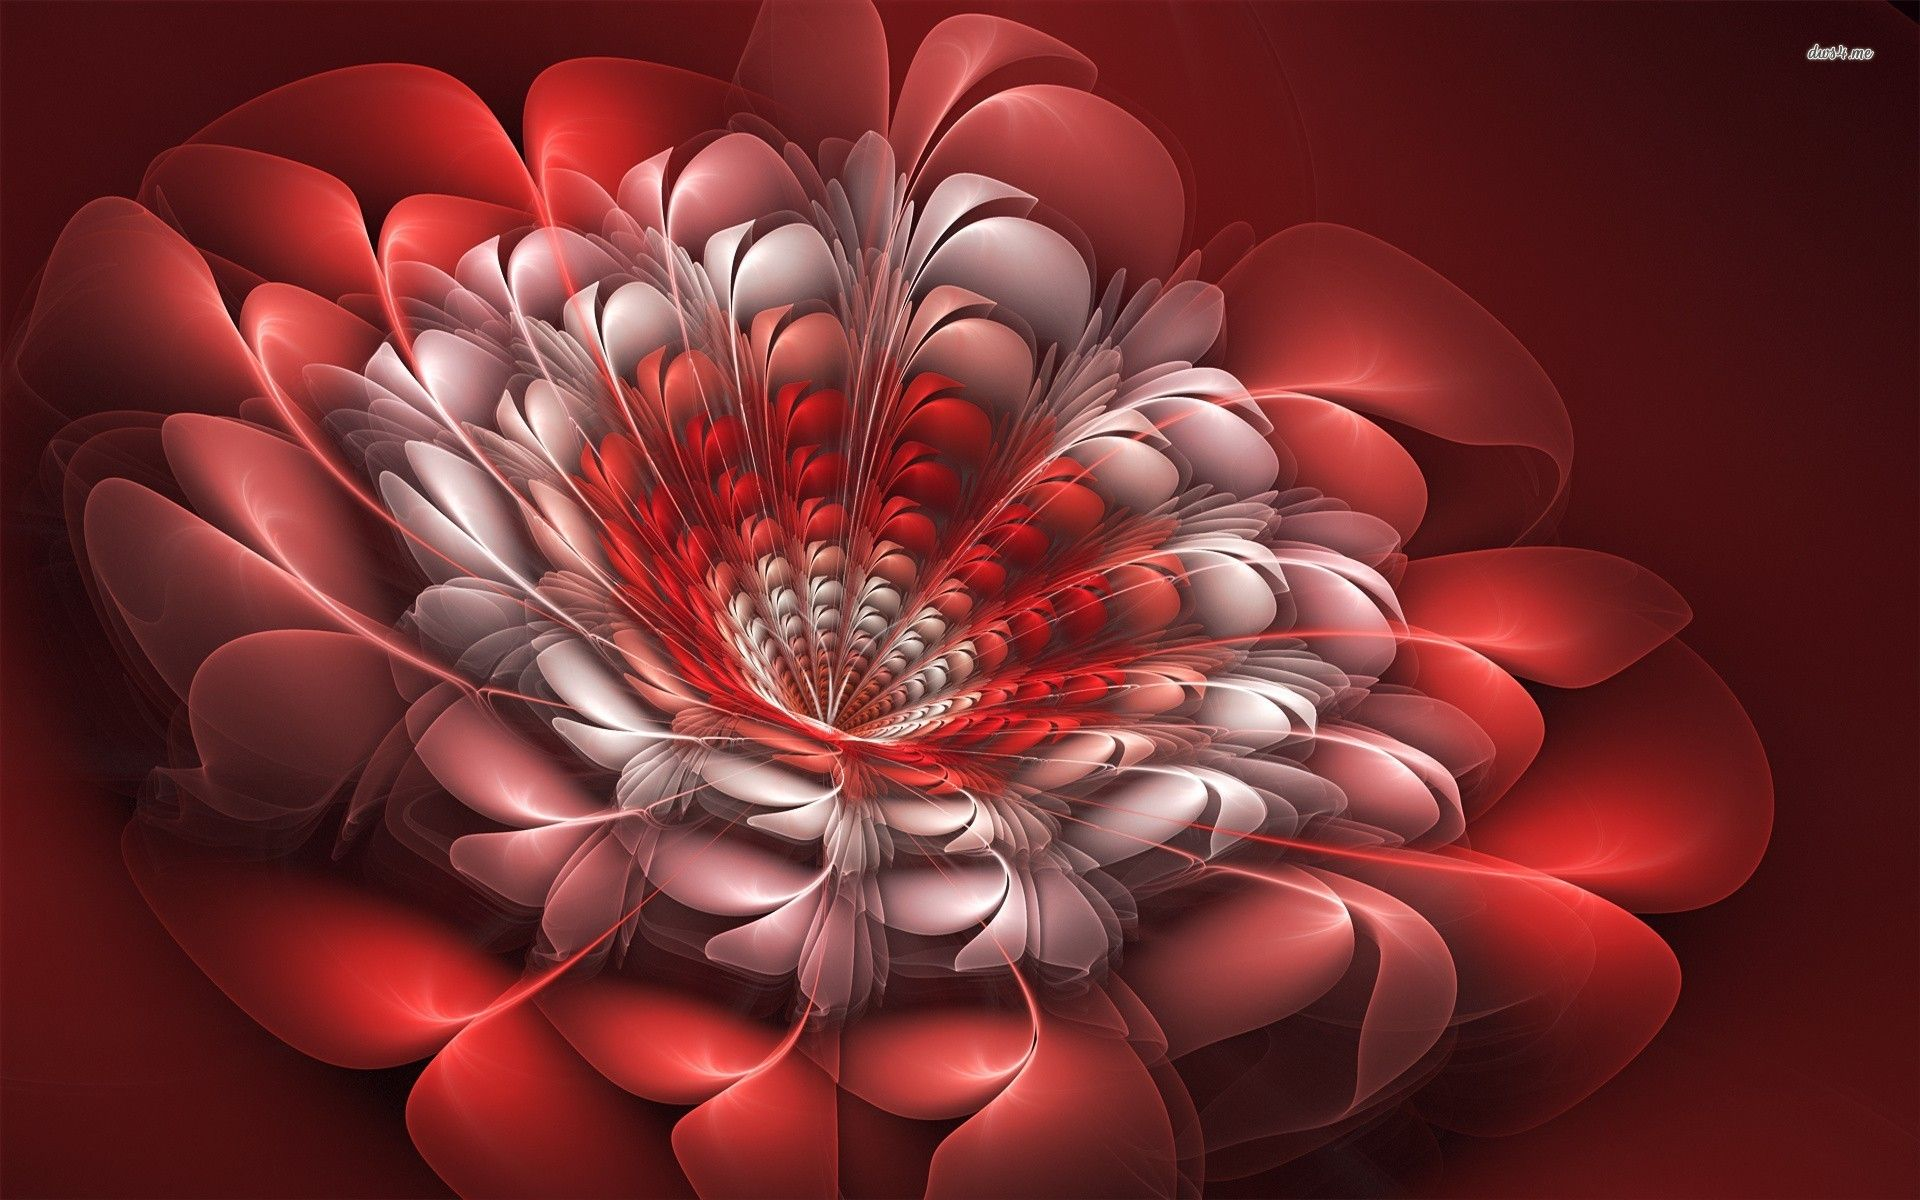 FLOWERS WALLPAPERS 3D FREE Wallpapers & Background images ...